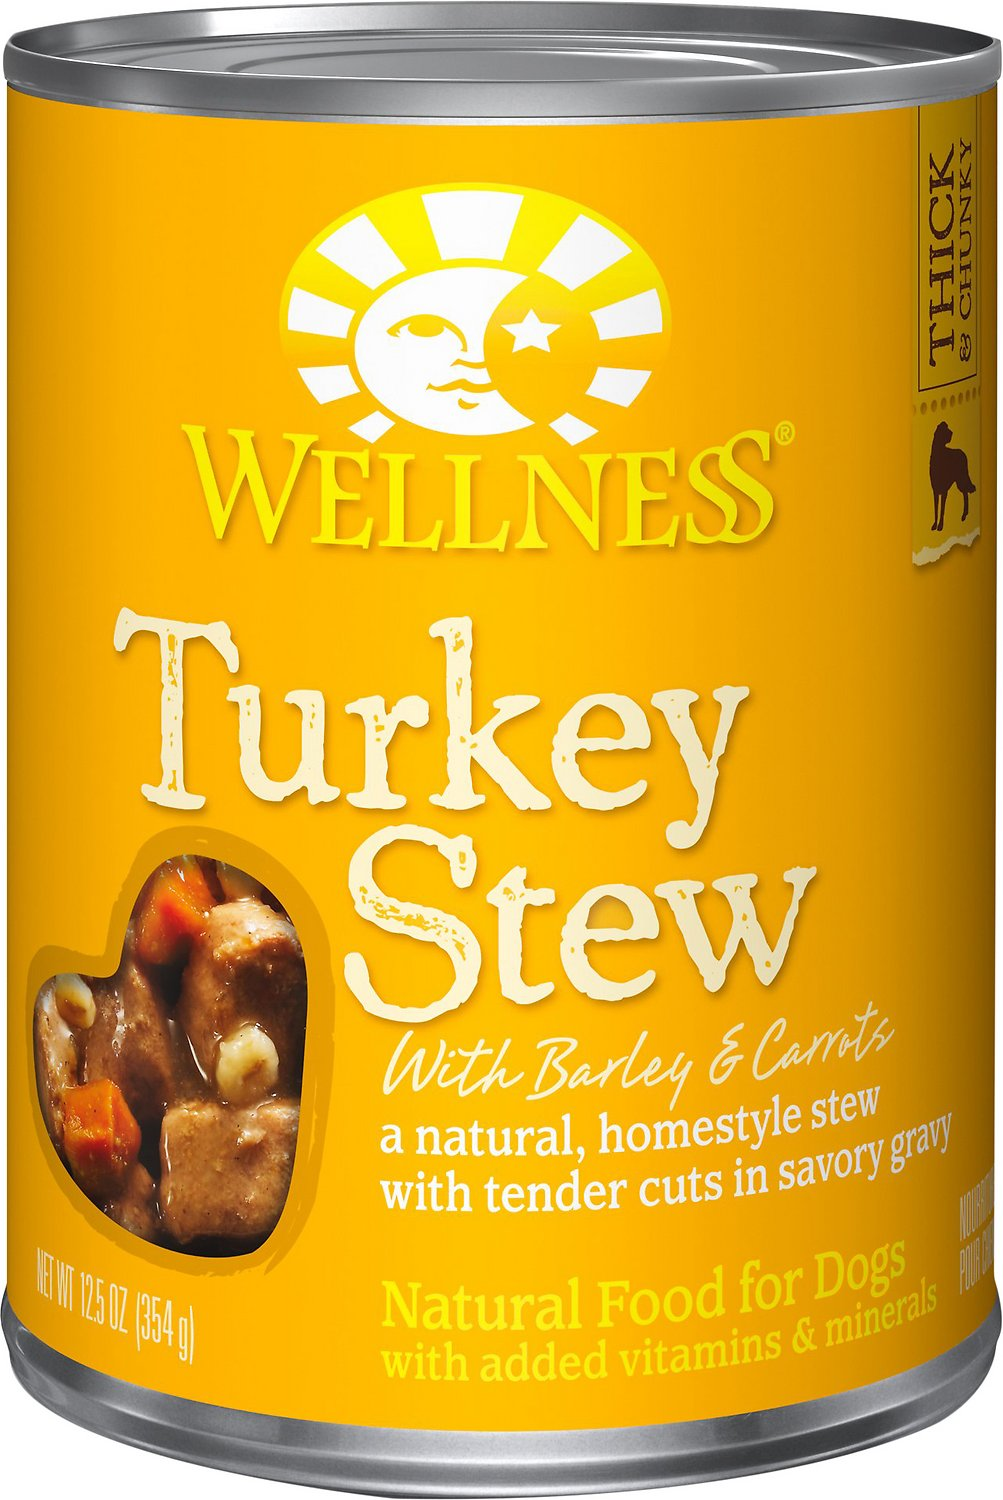 Wellness Turkey Stew with Barley & Carrots Canned Dog Food, 12.5-oz